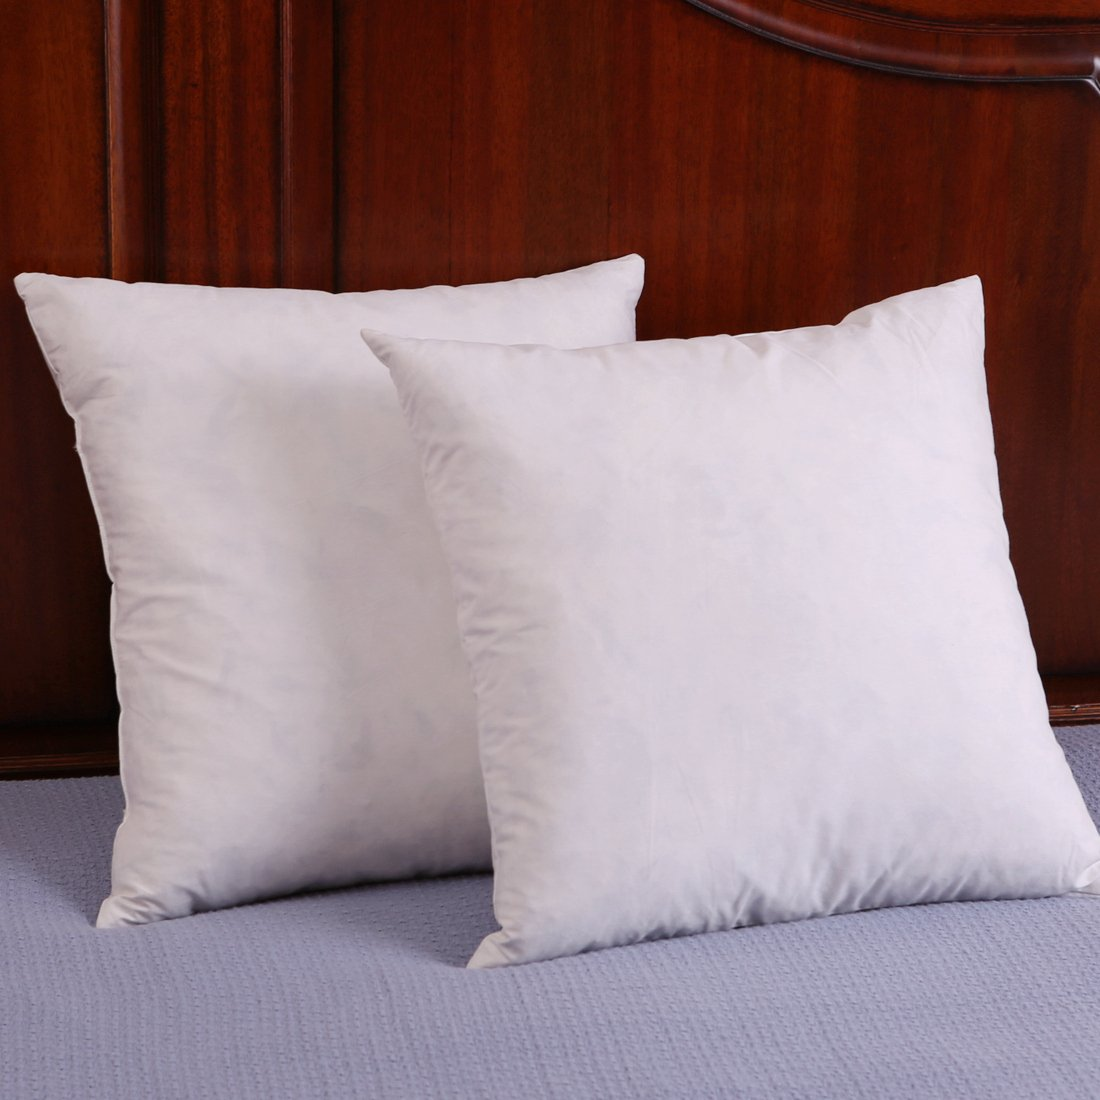 Best Set Of 2 Down And Feather Throw Pillow Insert Decorative This Month